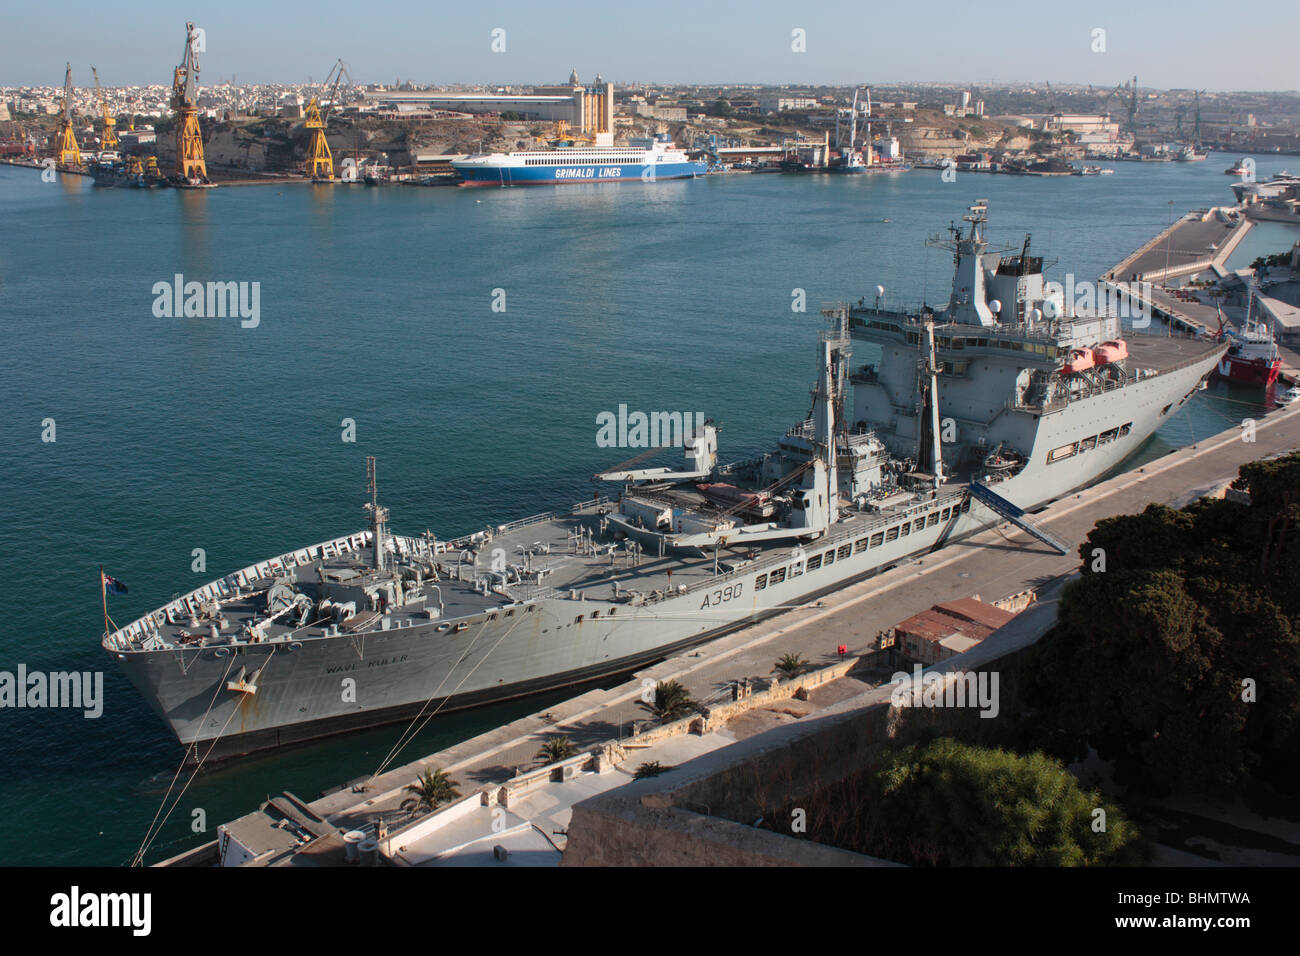 The Royal Fleet Auxiliary naval resupply ship Wave Ruler in Malta's Grand Harbour Stock Photo